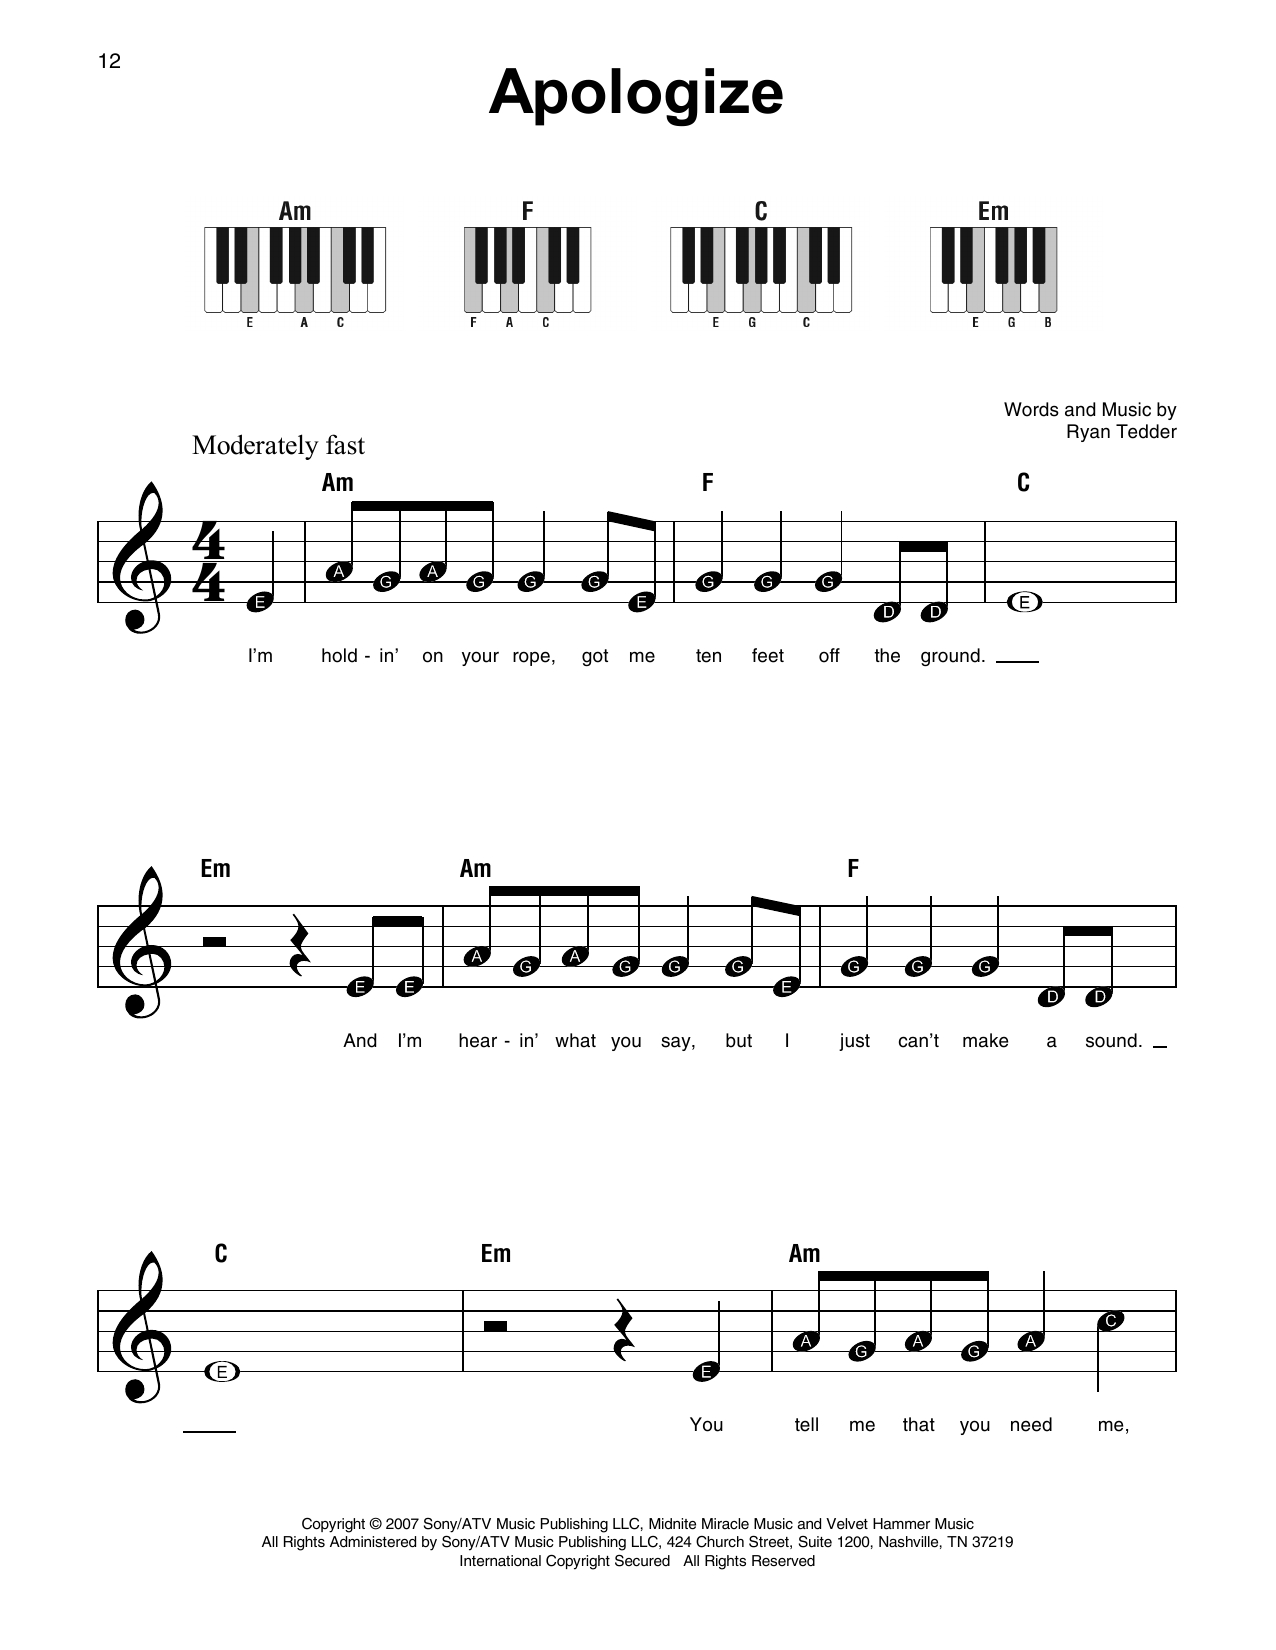 Apologize (Feat. Onerepublic) Sheet Music | Timbaland | Super Easy Piano - Apologize Piano Sheet Music Free Printable